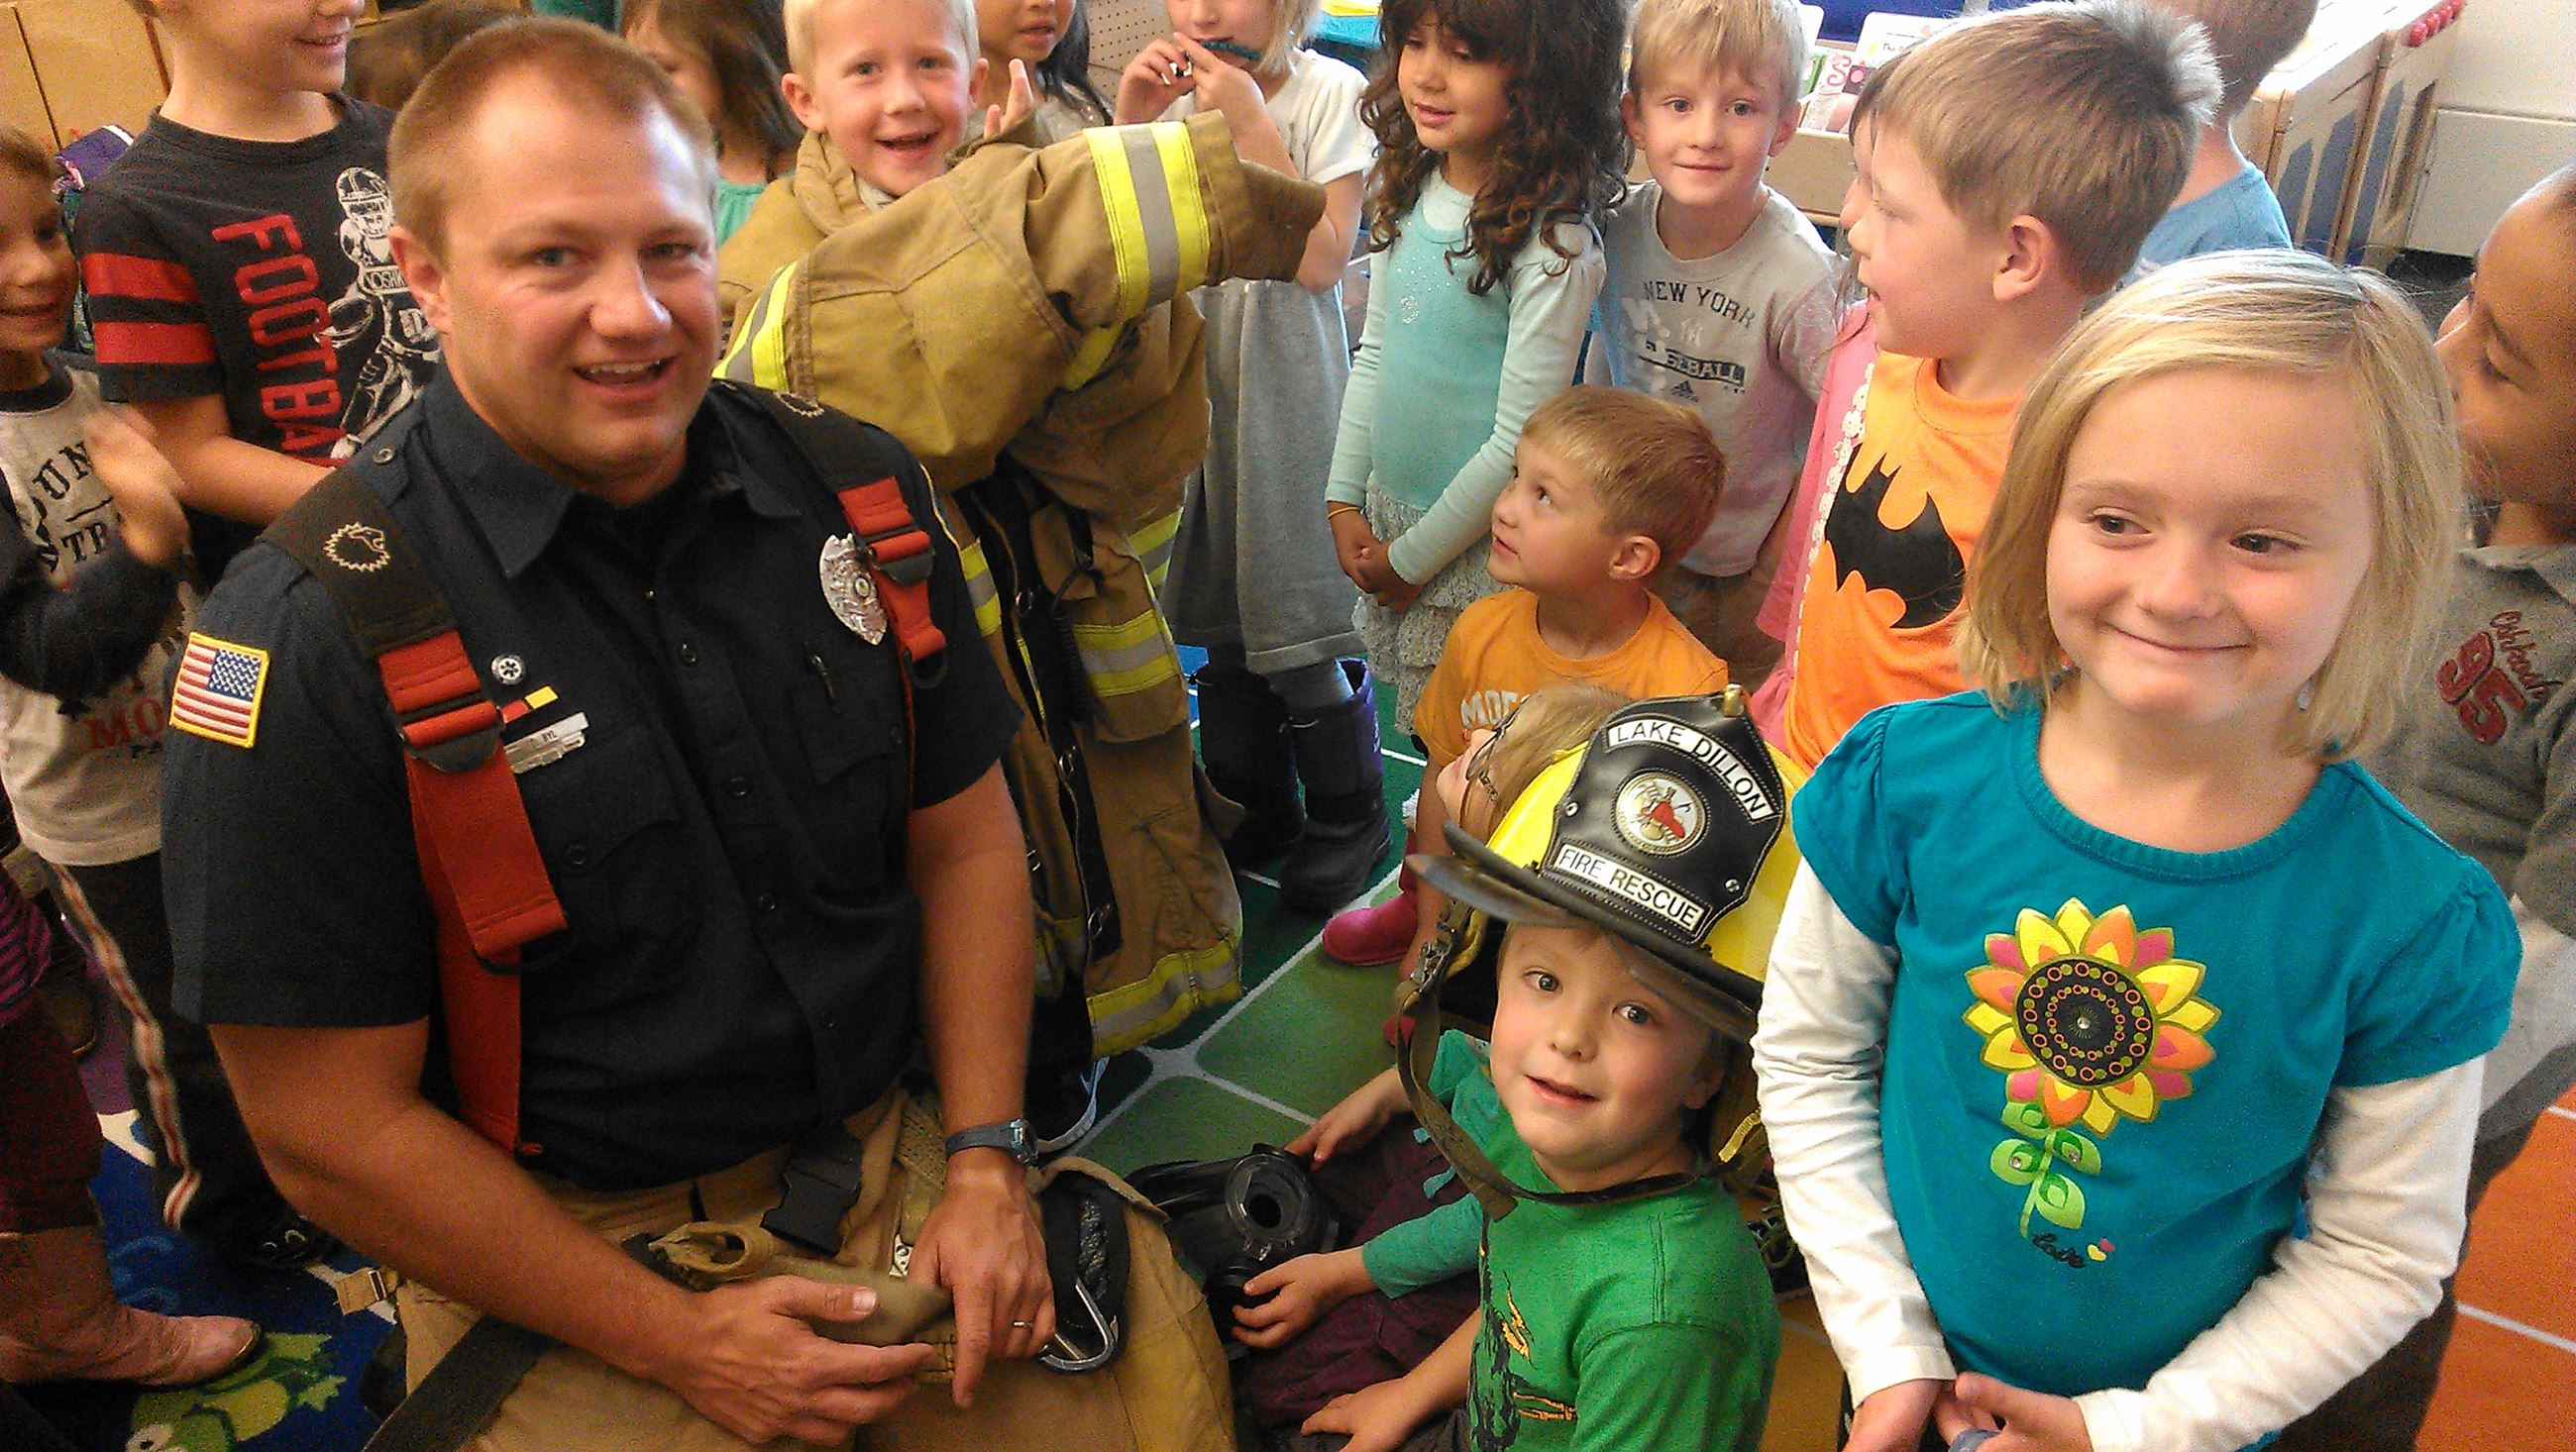 Firefighter / medic Case Byle hanging out with the kiddos